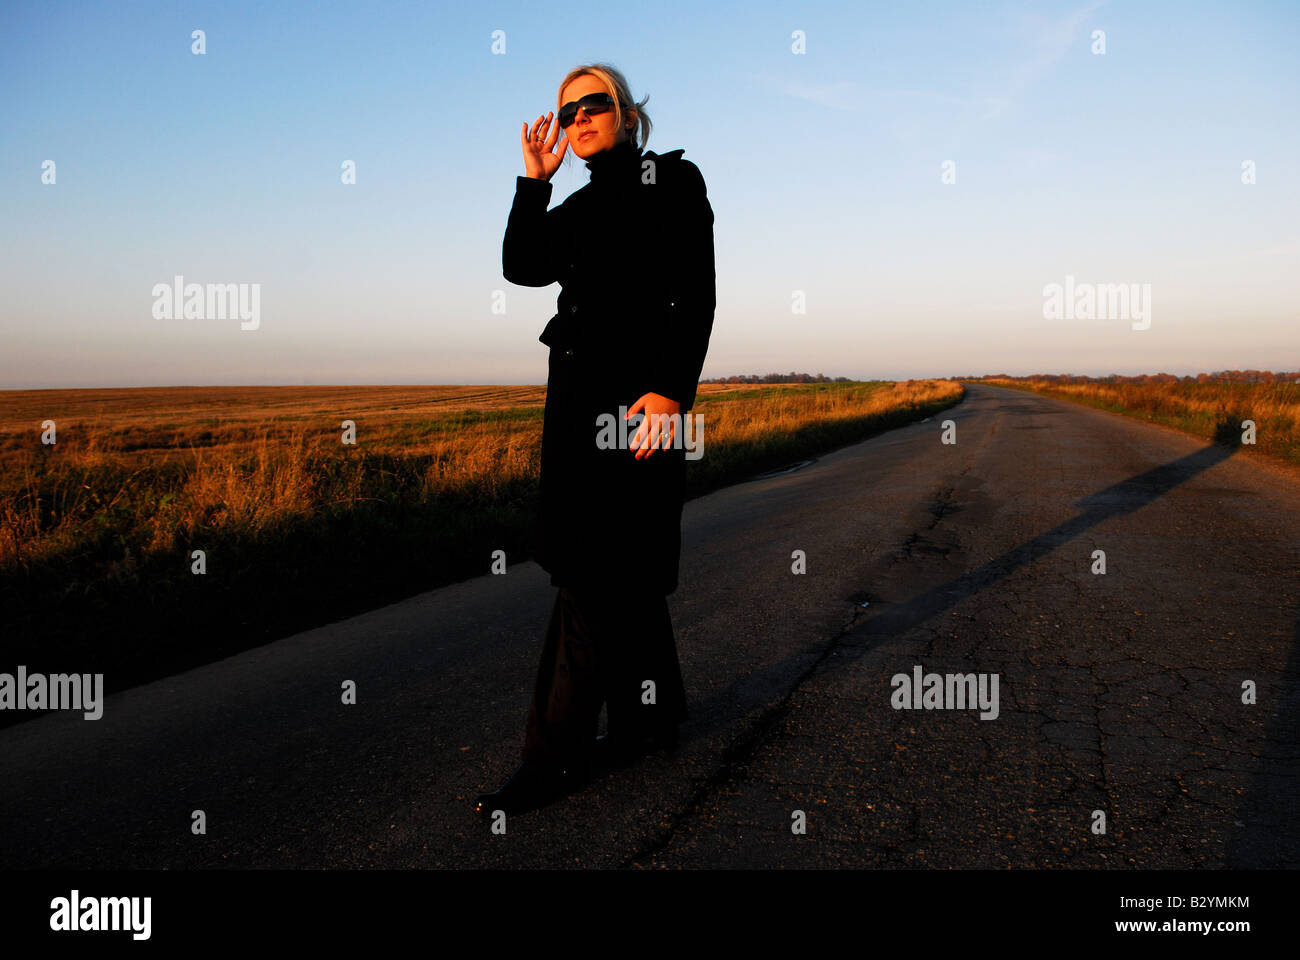 Buisness Women in the road - Stock Image